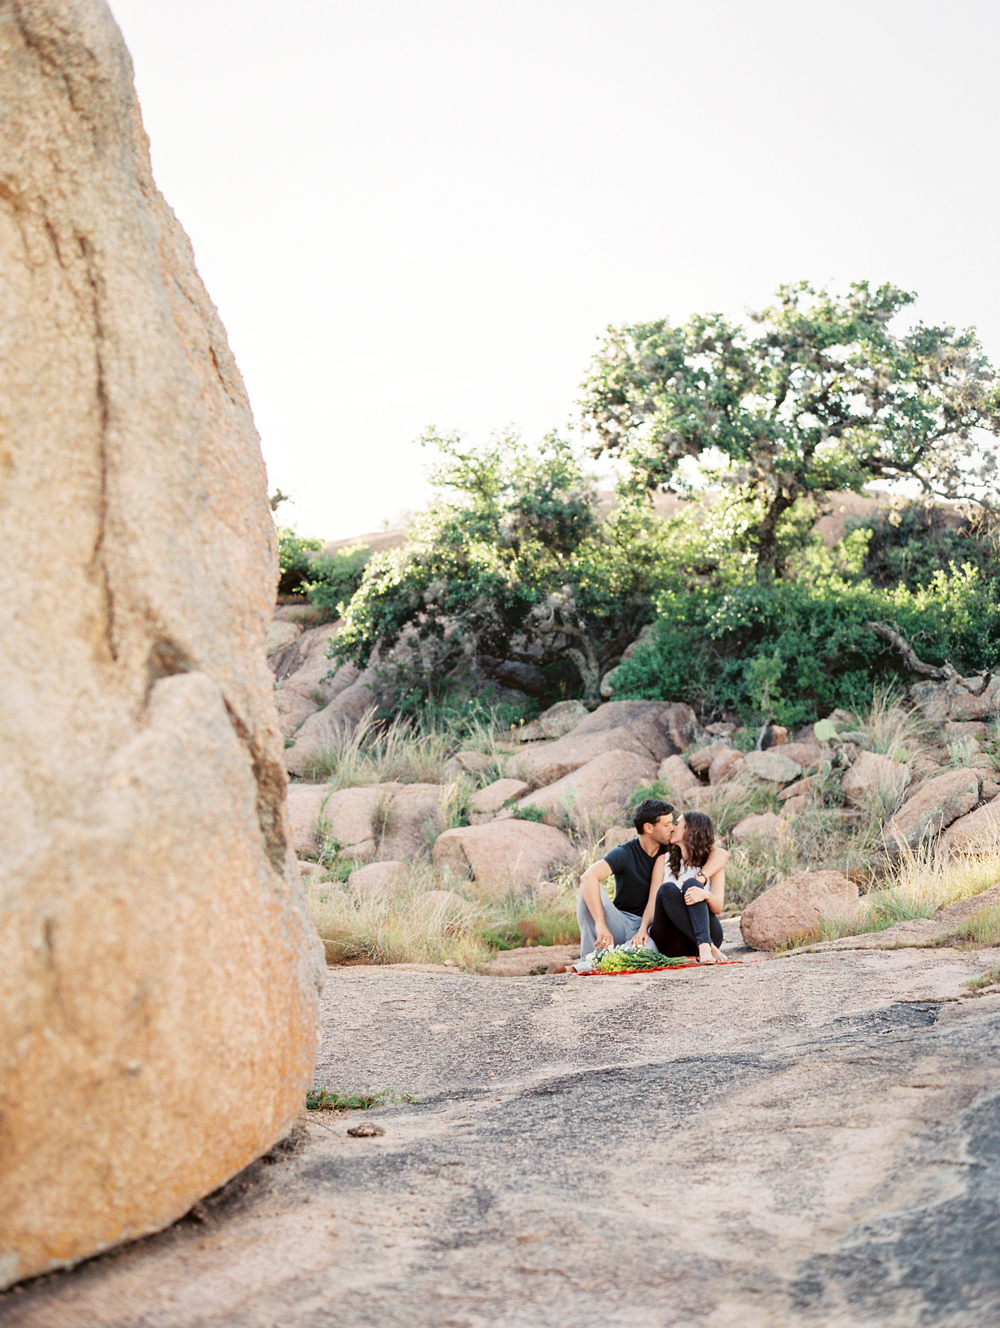 dana fernandez photography enchanted rock engagements photographer austin wedding destination film-1.jpg